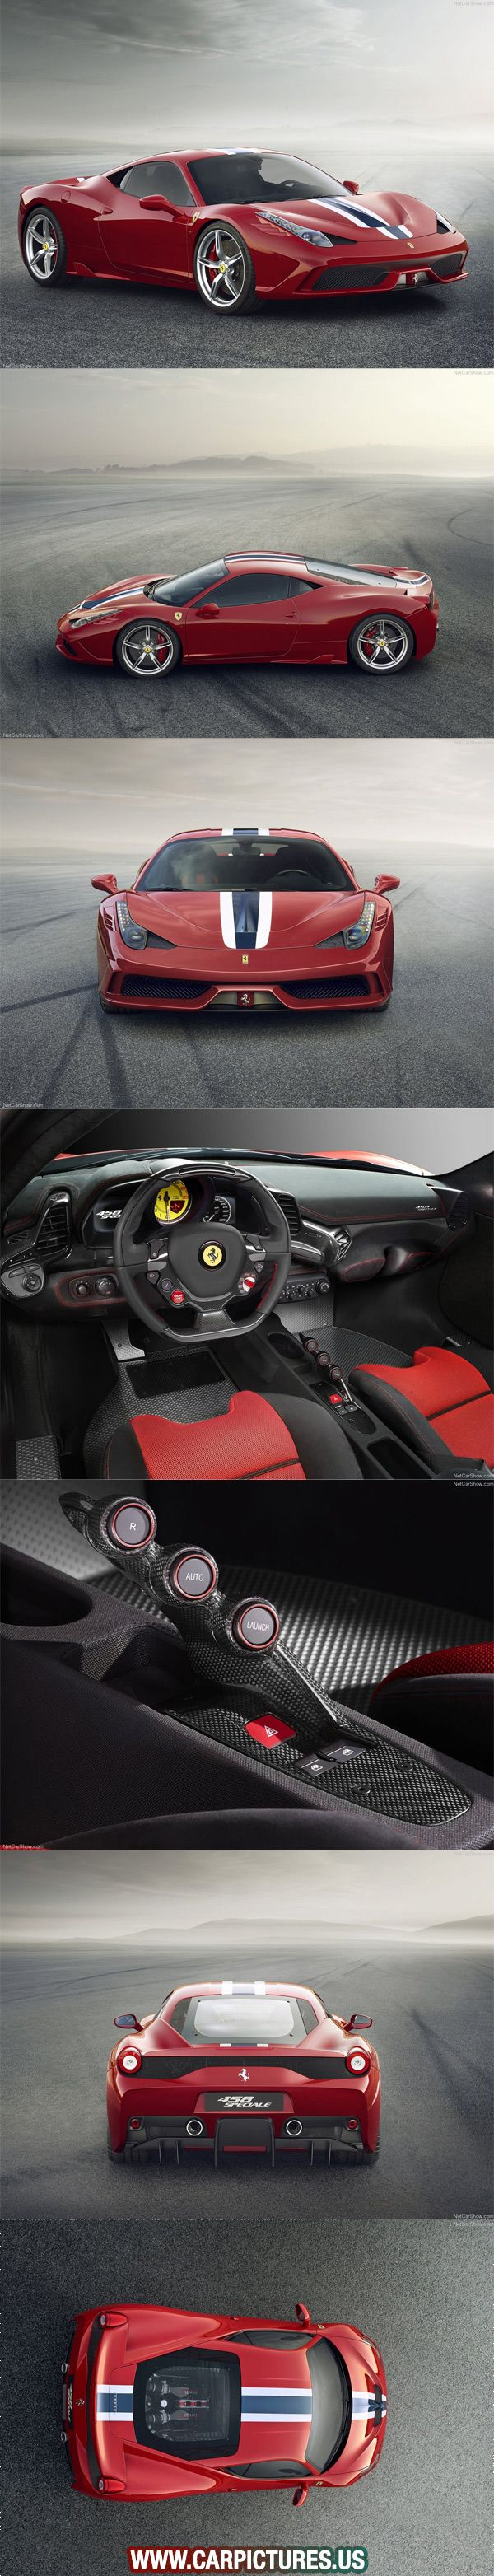 Luxury caravan with full size sports car garage from futuria - 2014 Ferrari 458 Speciale Luxurycars Vintagecars Sports Cars Find More Here Http